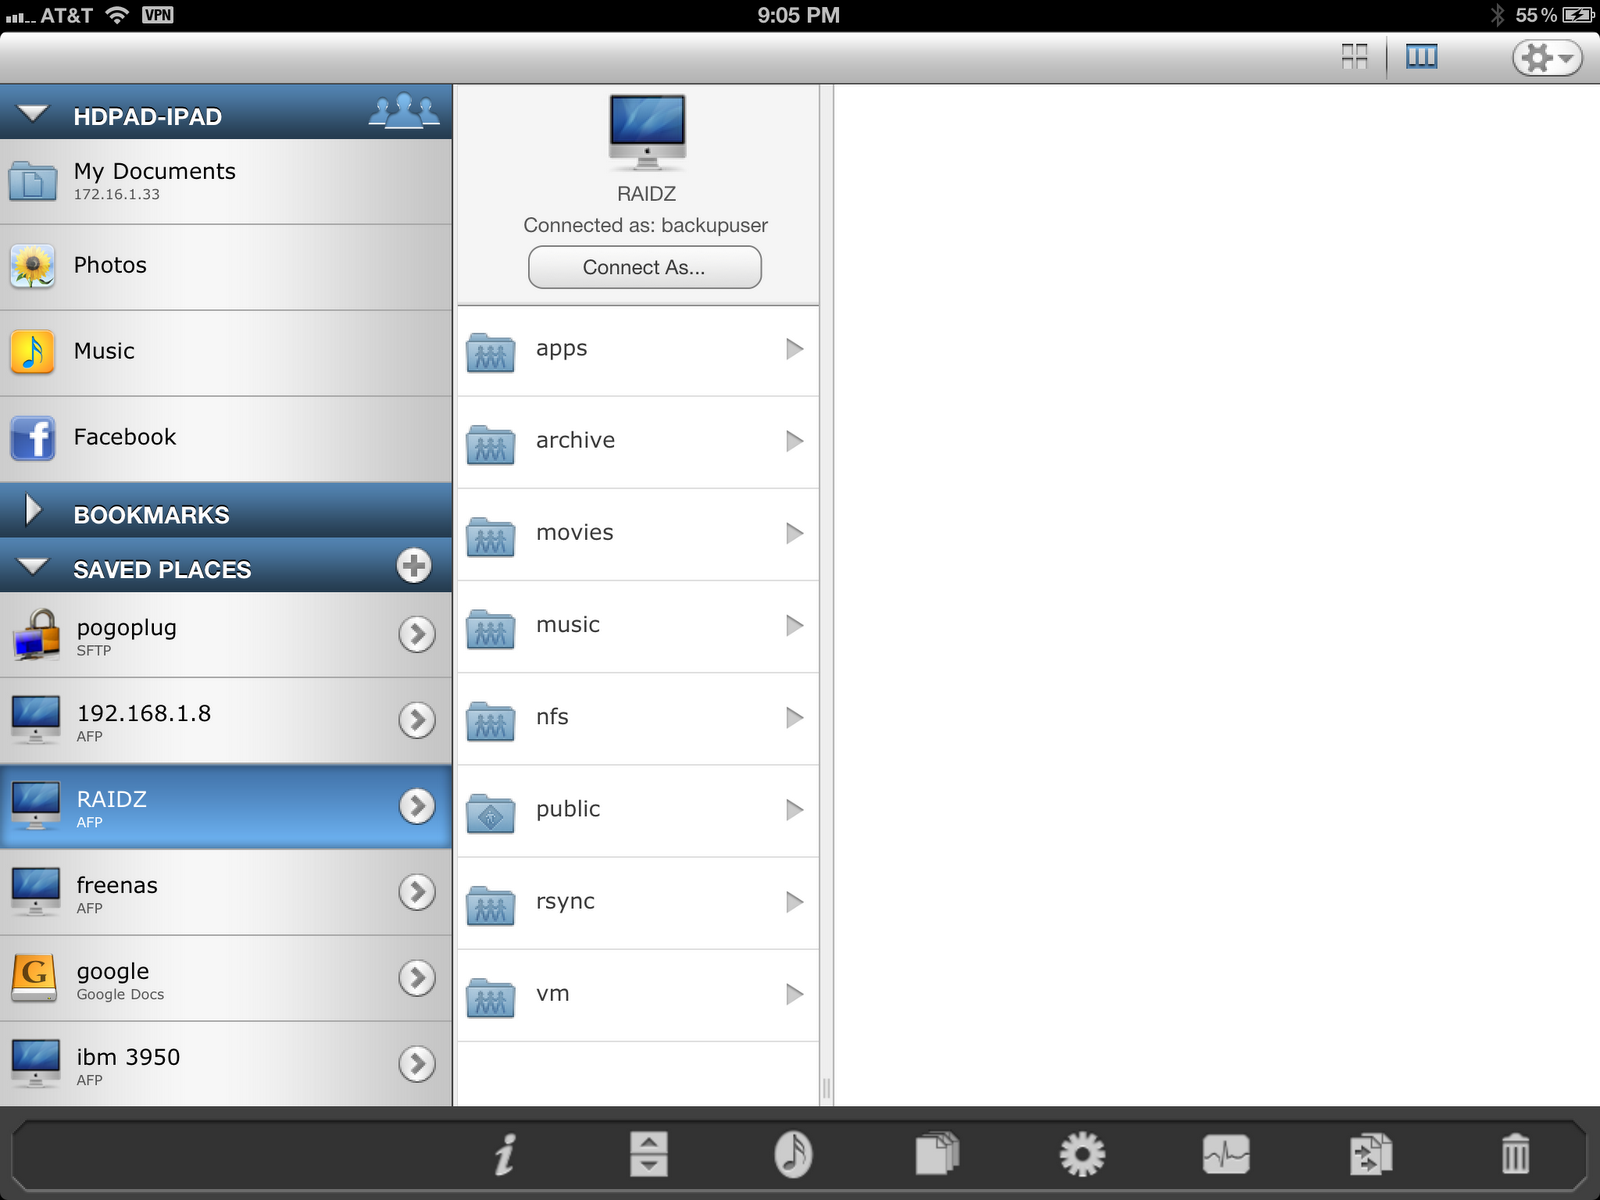 Fortysomething Geek: iPad / iPhone connect with FreeNAS (or